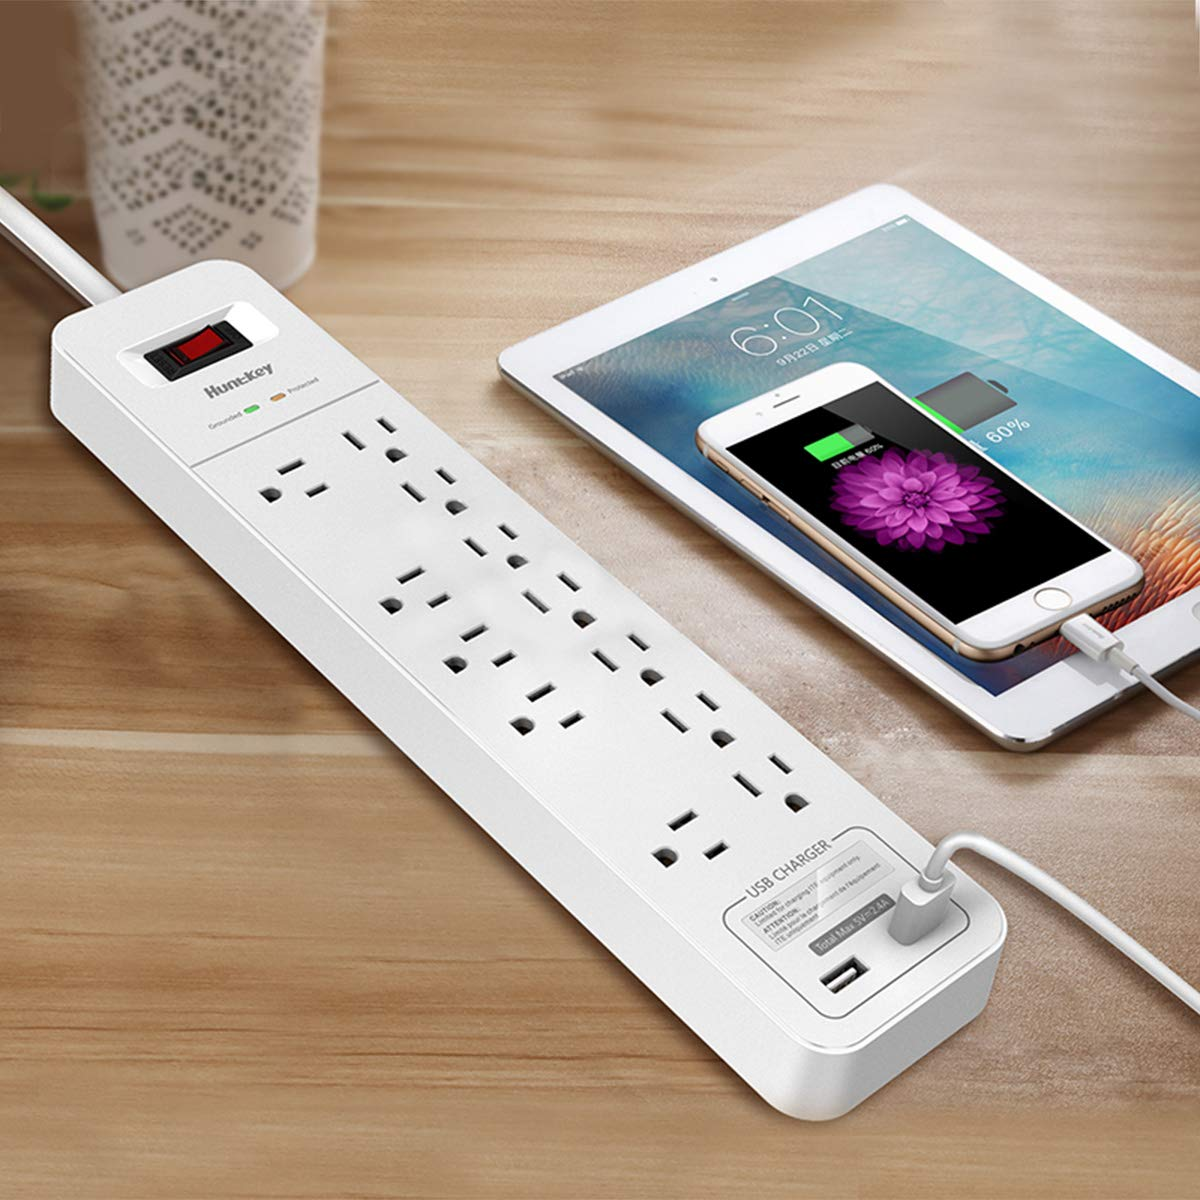 Huntkey 12 Outlets Surge Protector Power Strip with 2 USB Ports (5V 2.4A with Smart IC Technology), 6-Foot Heavy Duty Extension Cord, SMC127 by Huntkey (Image #5)